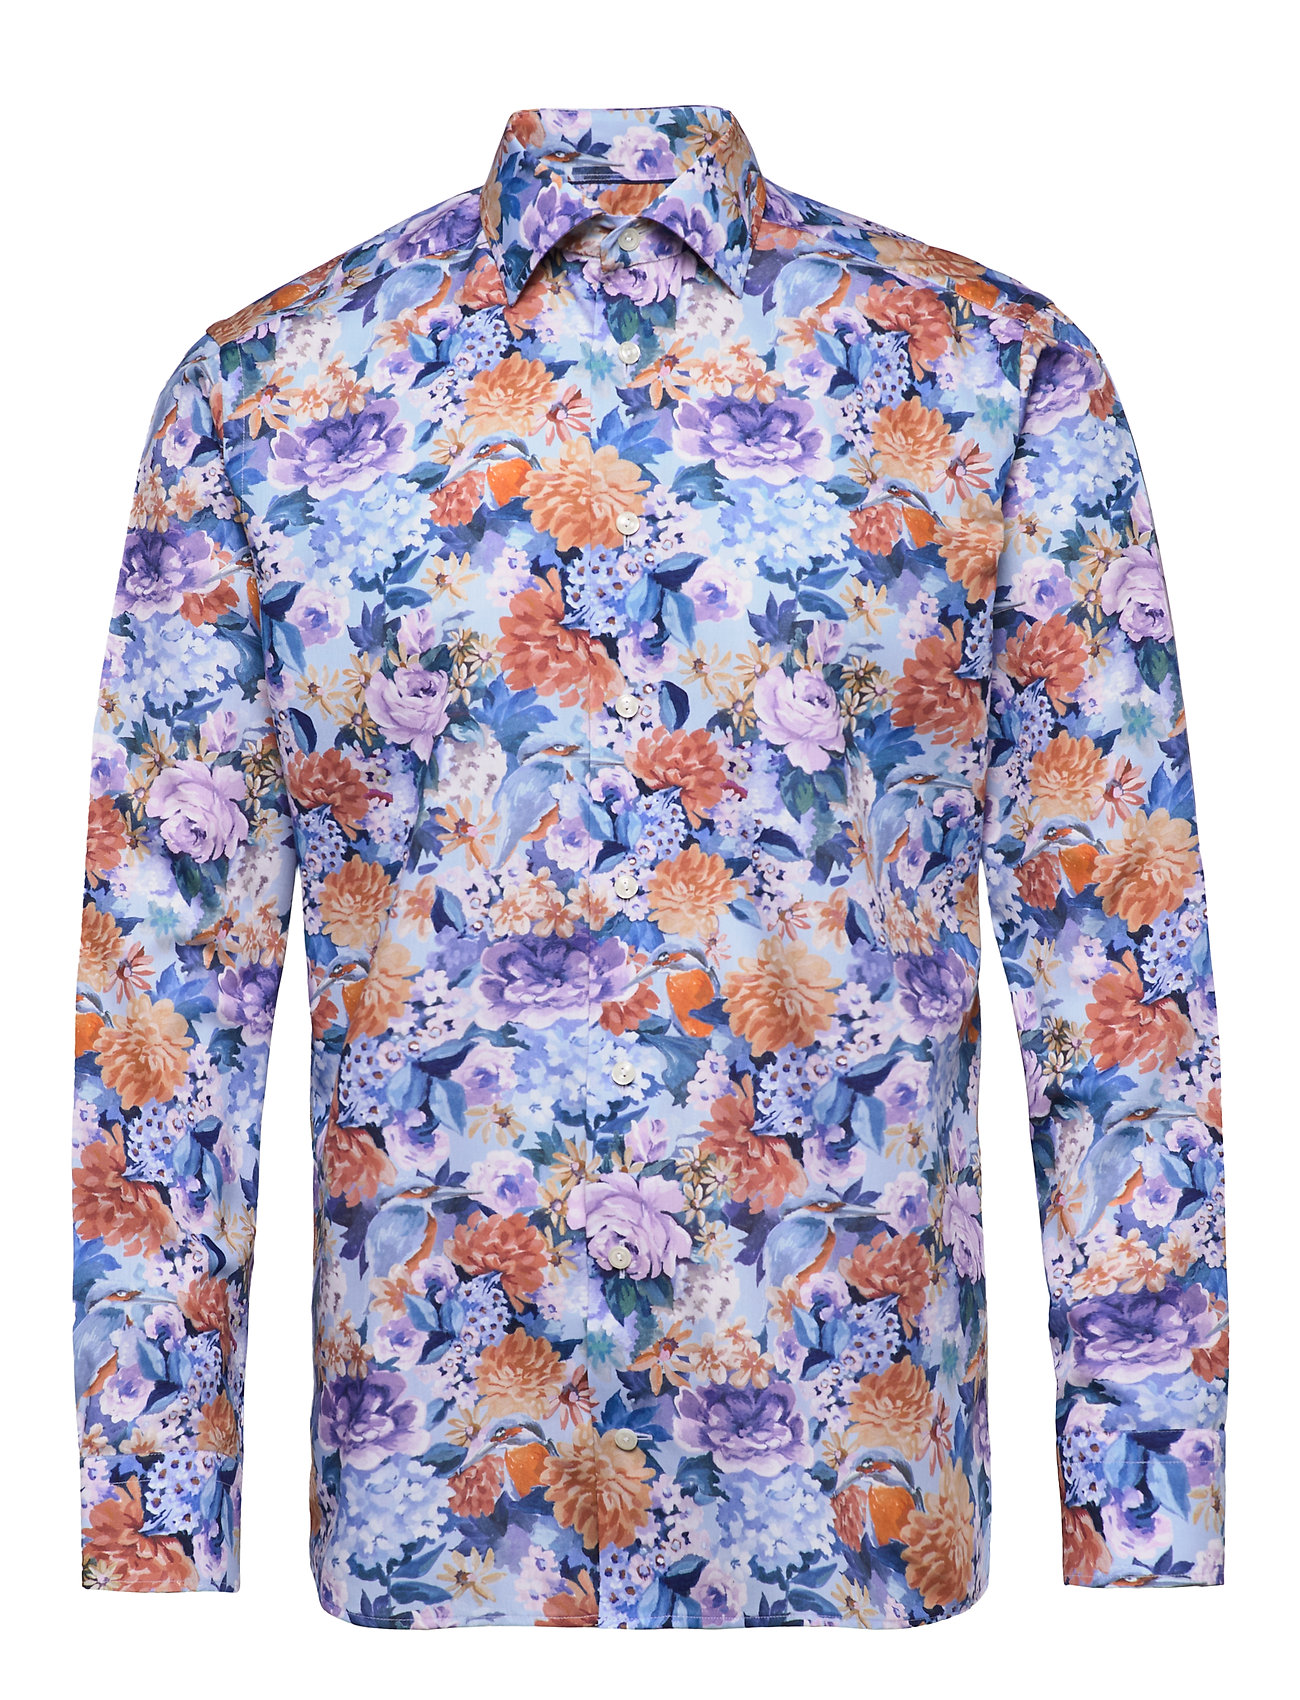 Eton Floral Print Cotton-Tencel Shirt - BLUE